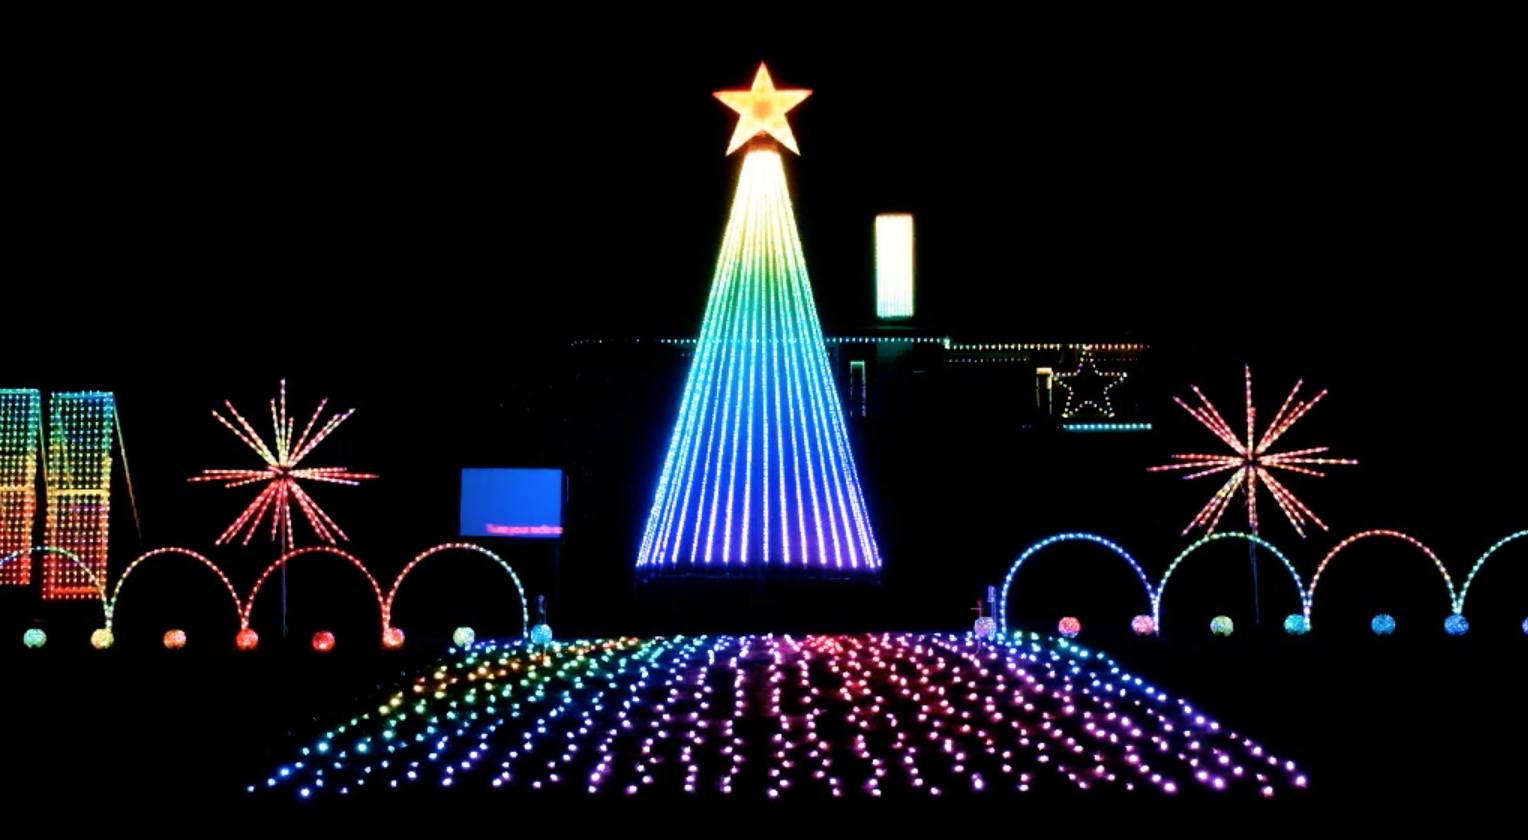 Elegant The Laberge Christmas Lights In 2015 (Paul Laberge)